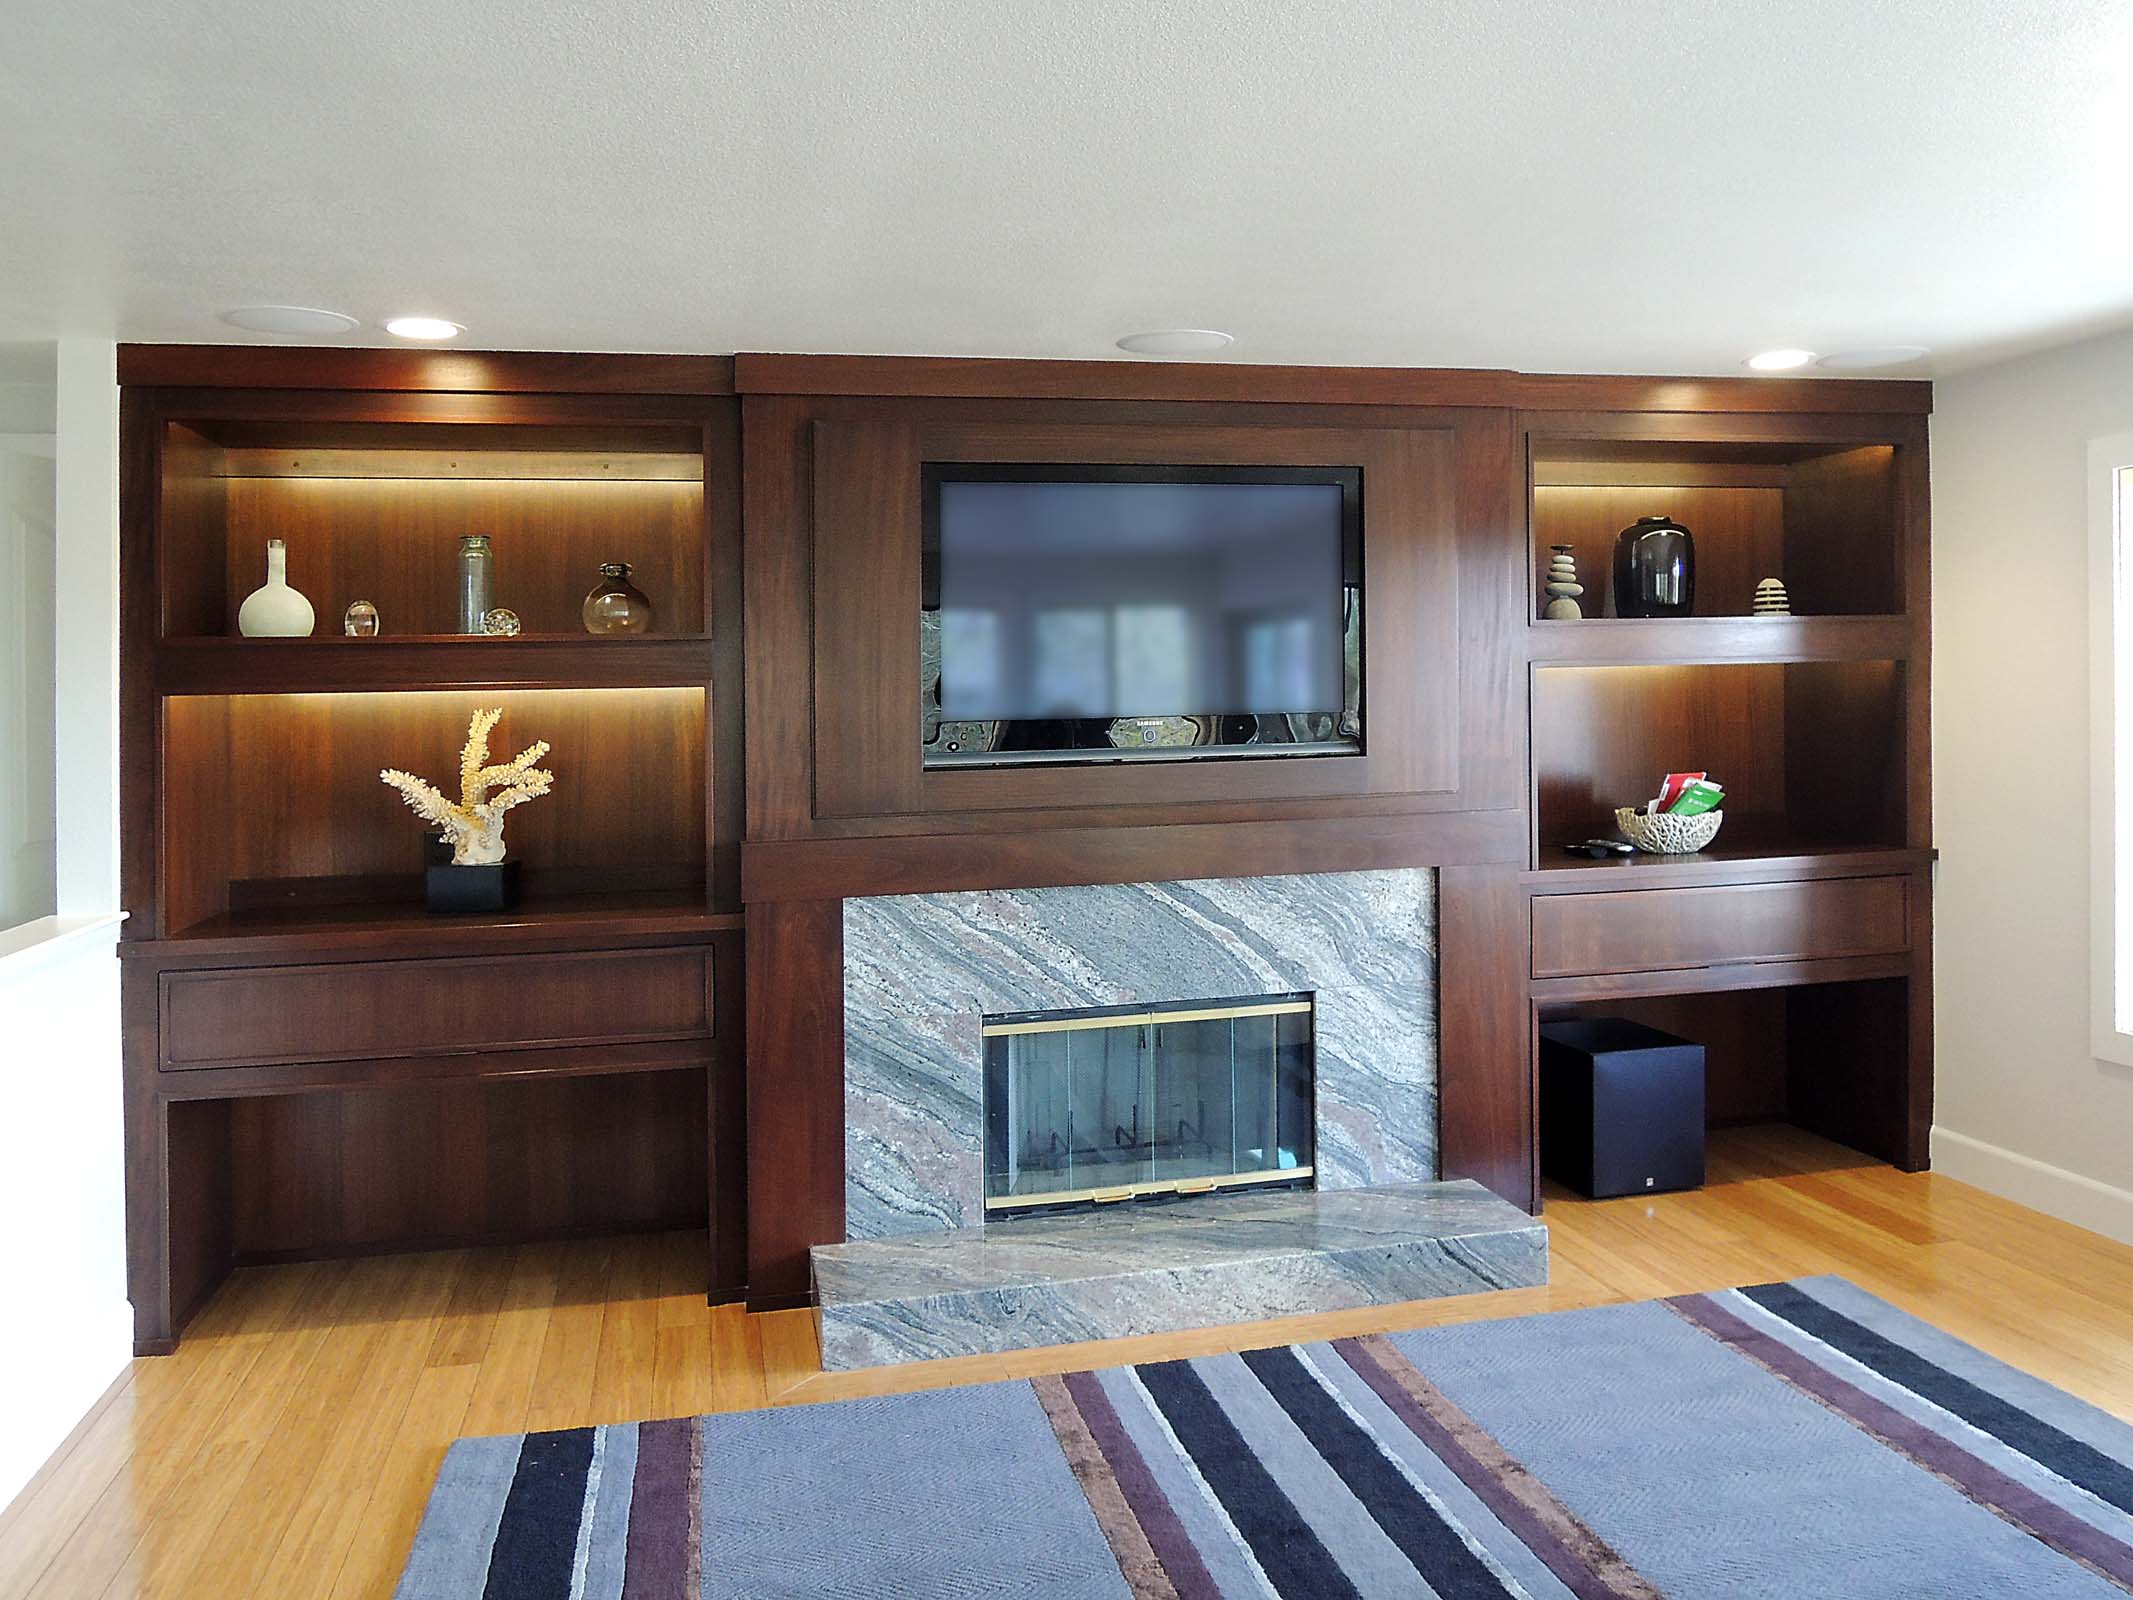 Mahogany Niche Inset Cabinets With LED Illumination And Framed In TV.  Fireplace Surround With Granite